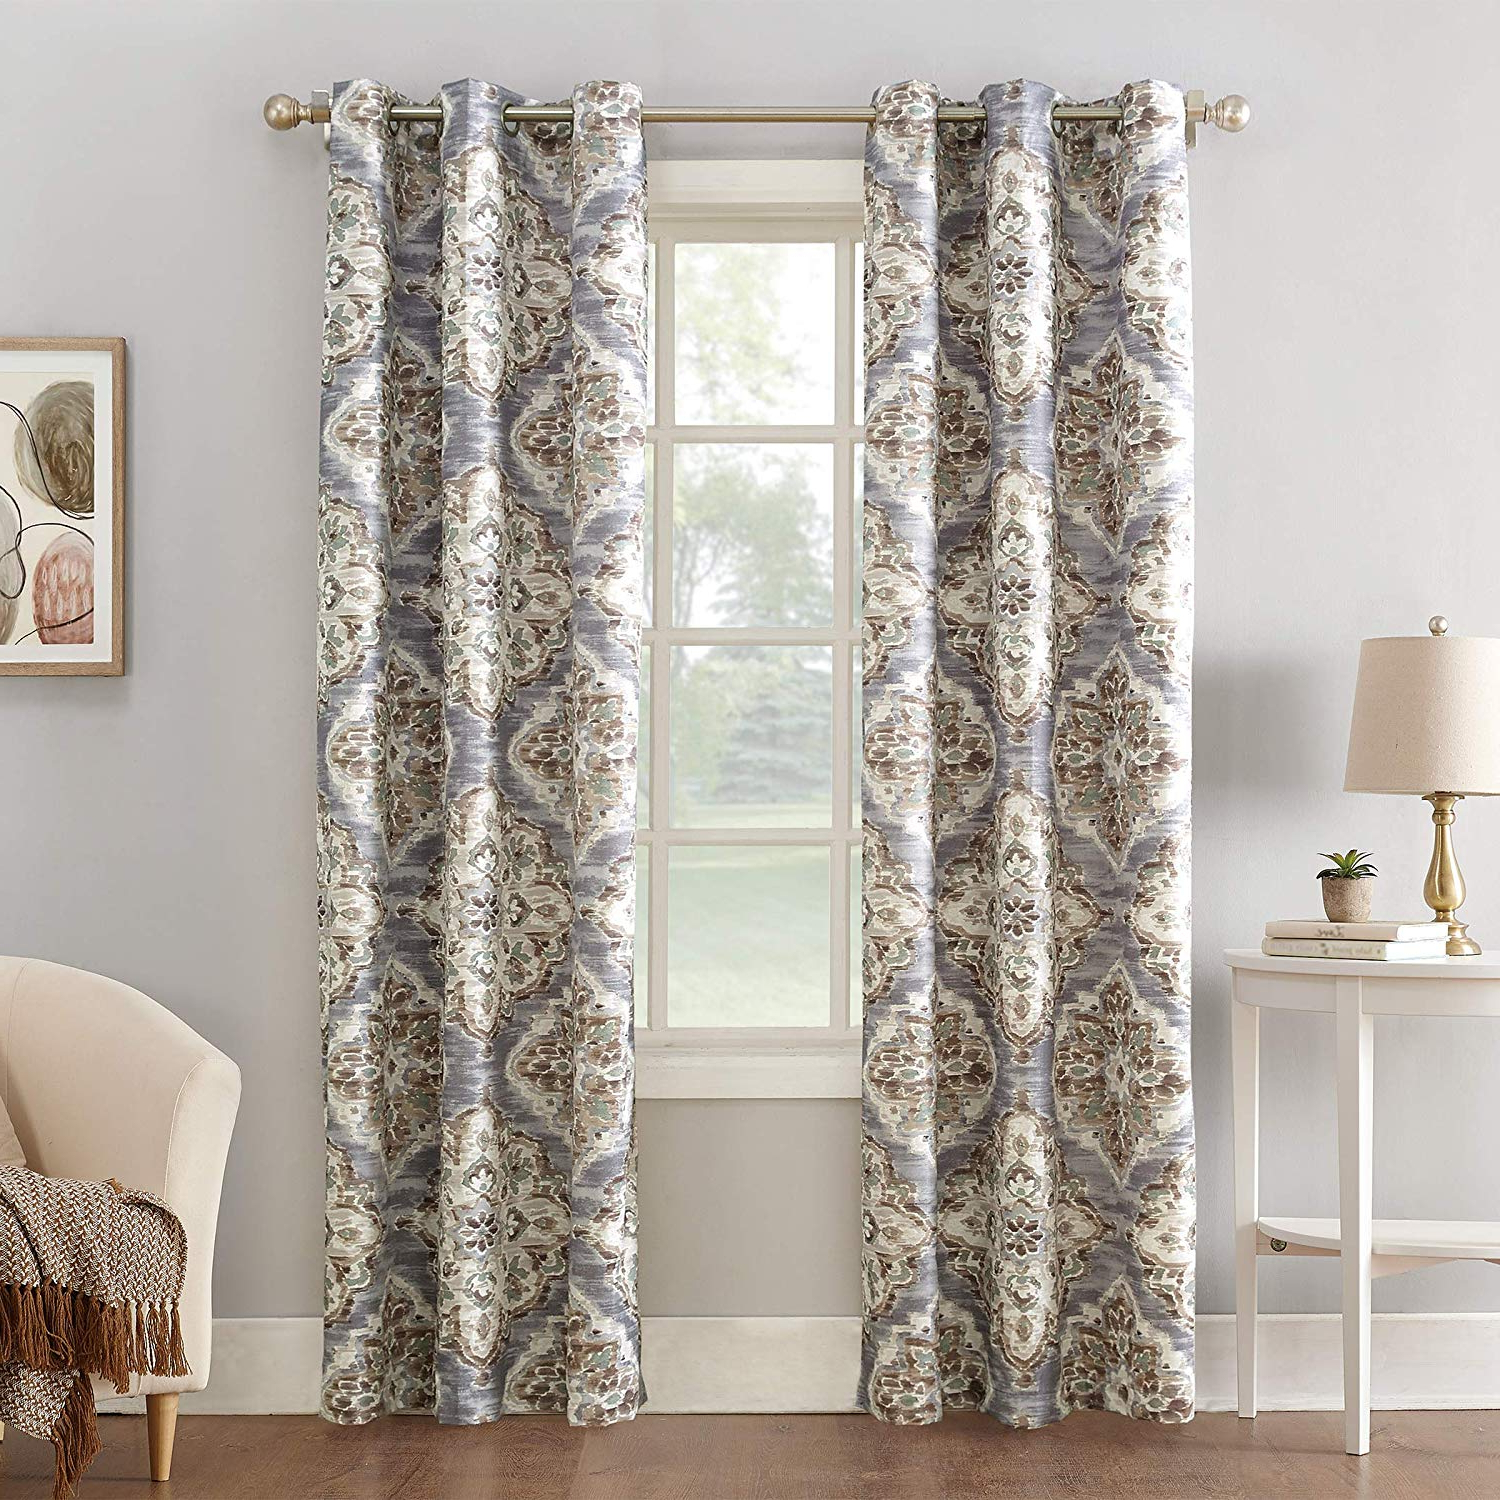 "Cooper Textured Thermal Insulated Grommet Curtain Panels With Regard To Preferred Sun Zero Cooper Floral Watercolor Thermal Insulated Room Darkening Grommet  Curtain Panel 40"" X 63"" Gray (View 9 of 20)"